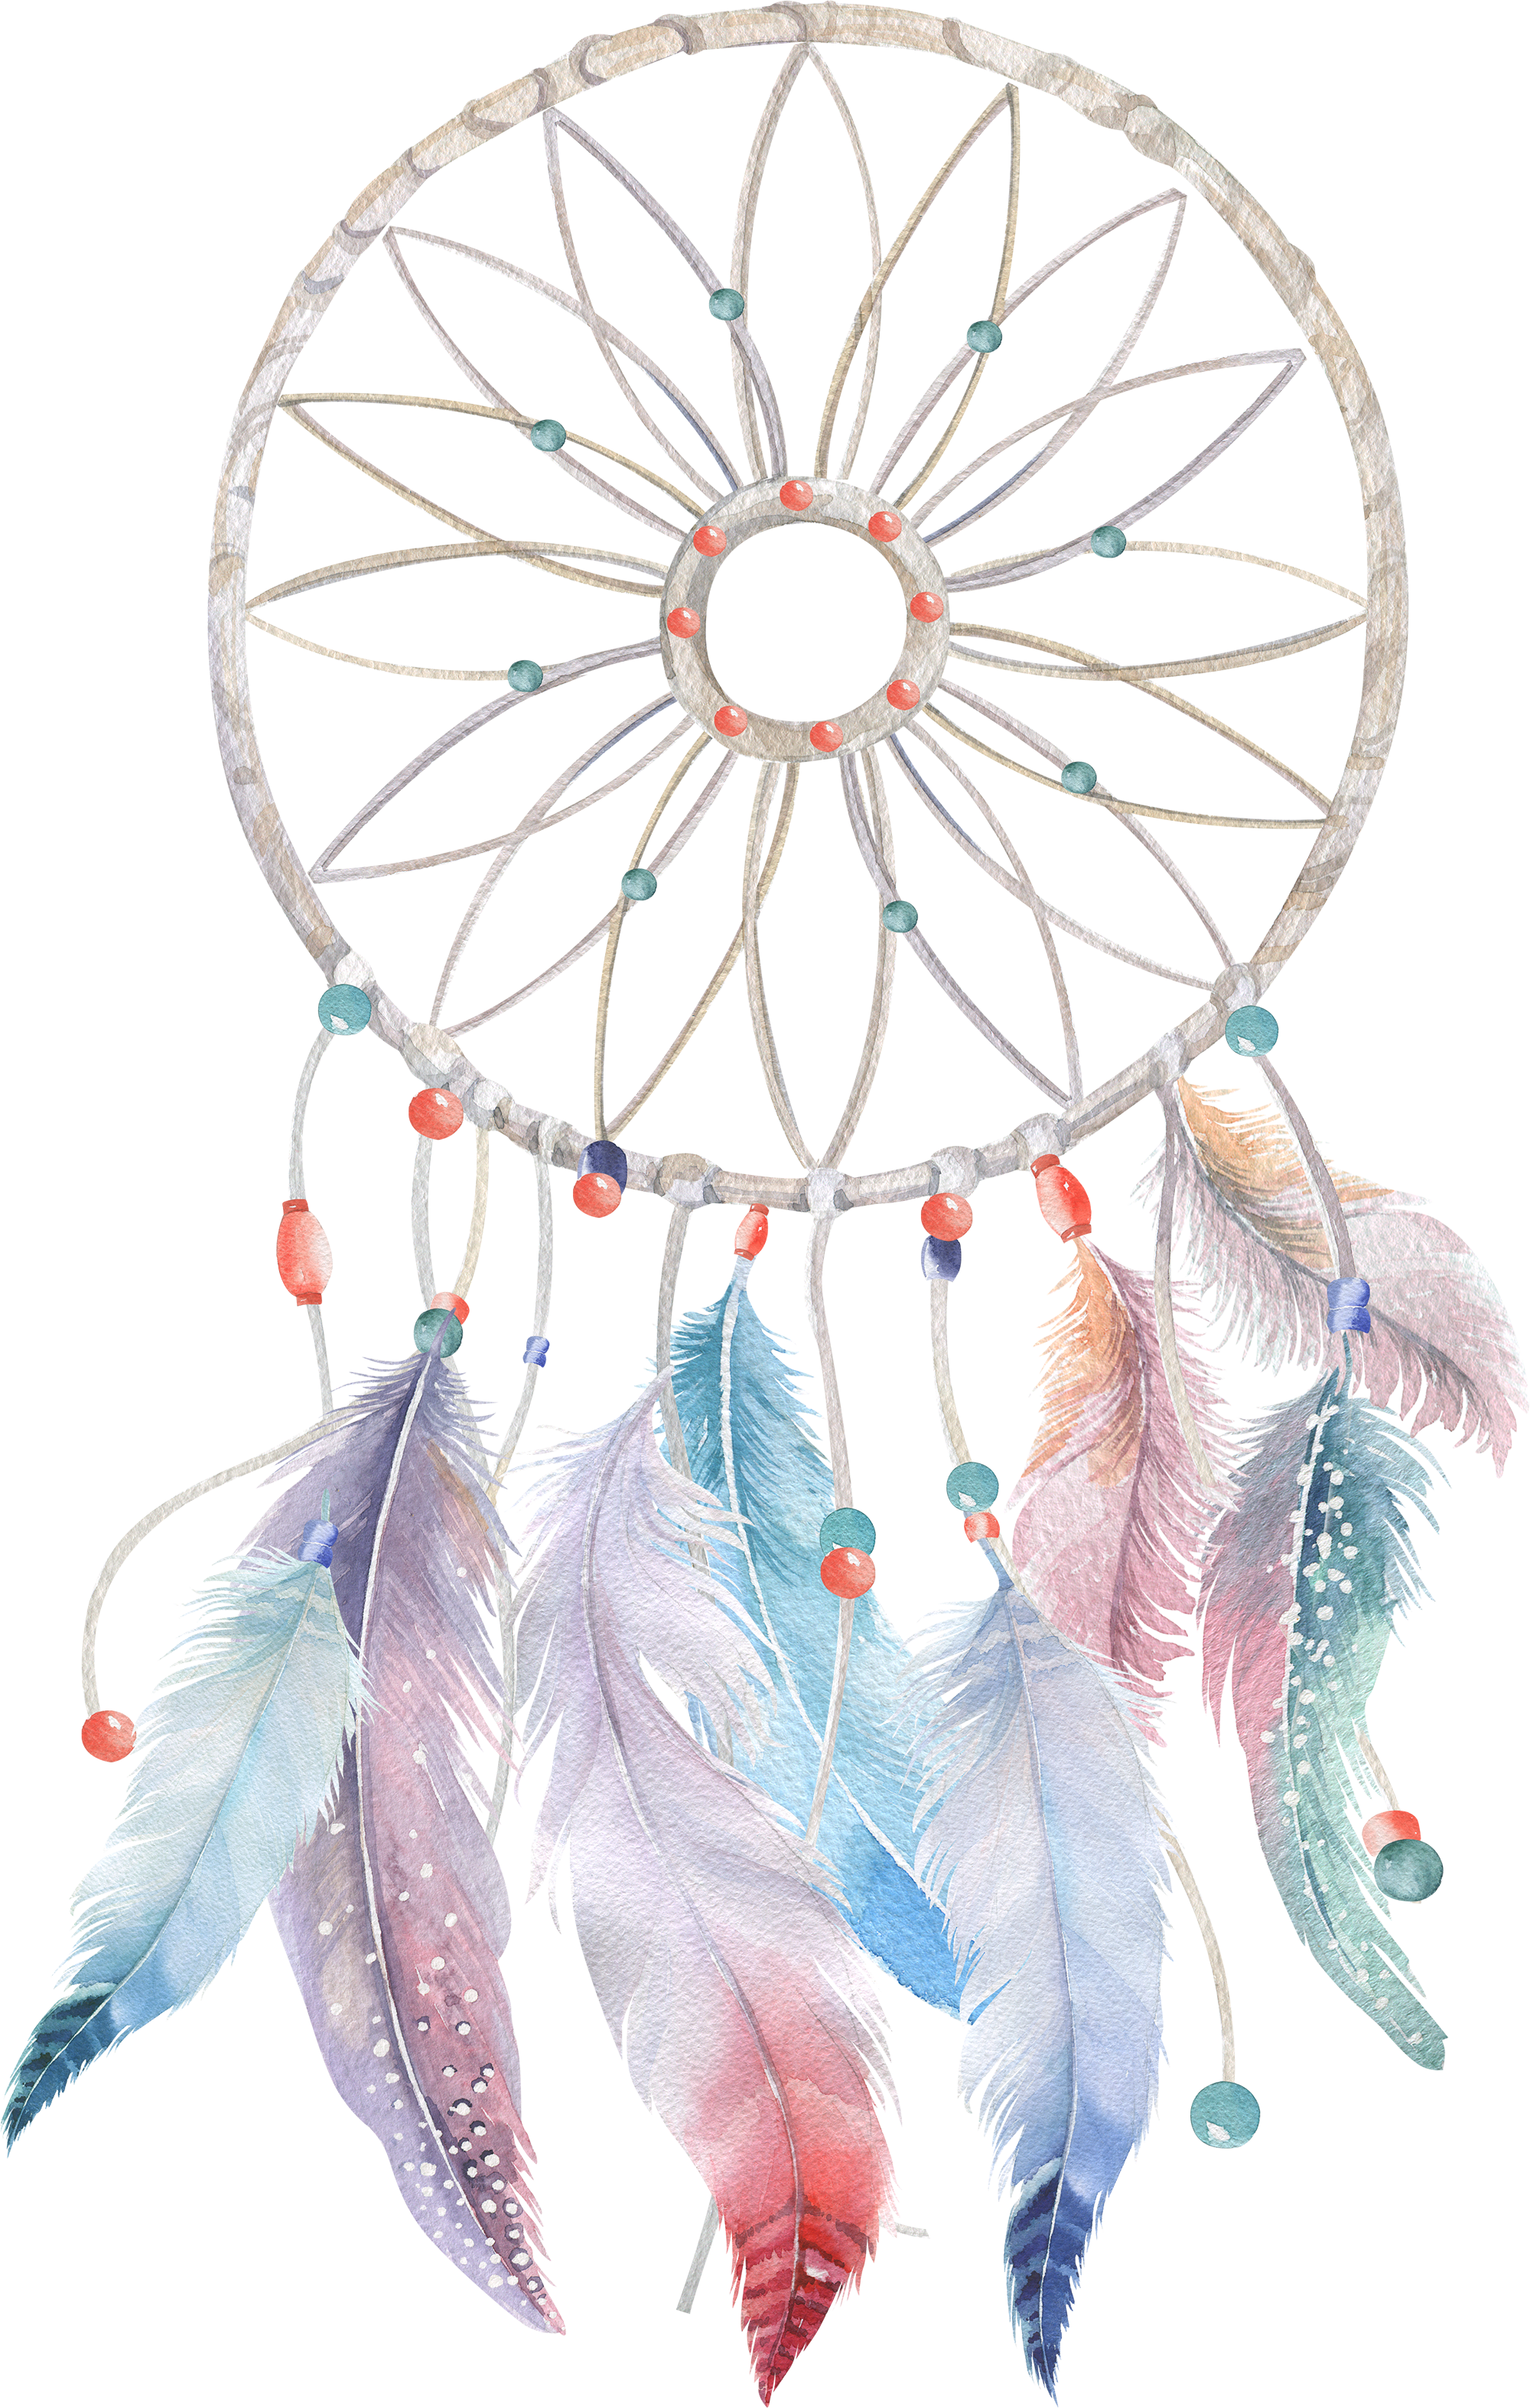 Watercolor Feather Boho-Chic Painting Dreamcatcher Free Transparent Image HD PNG Image